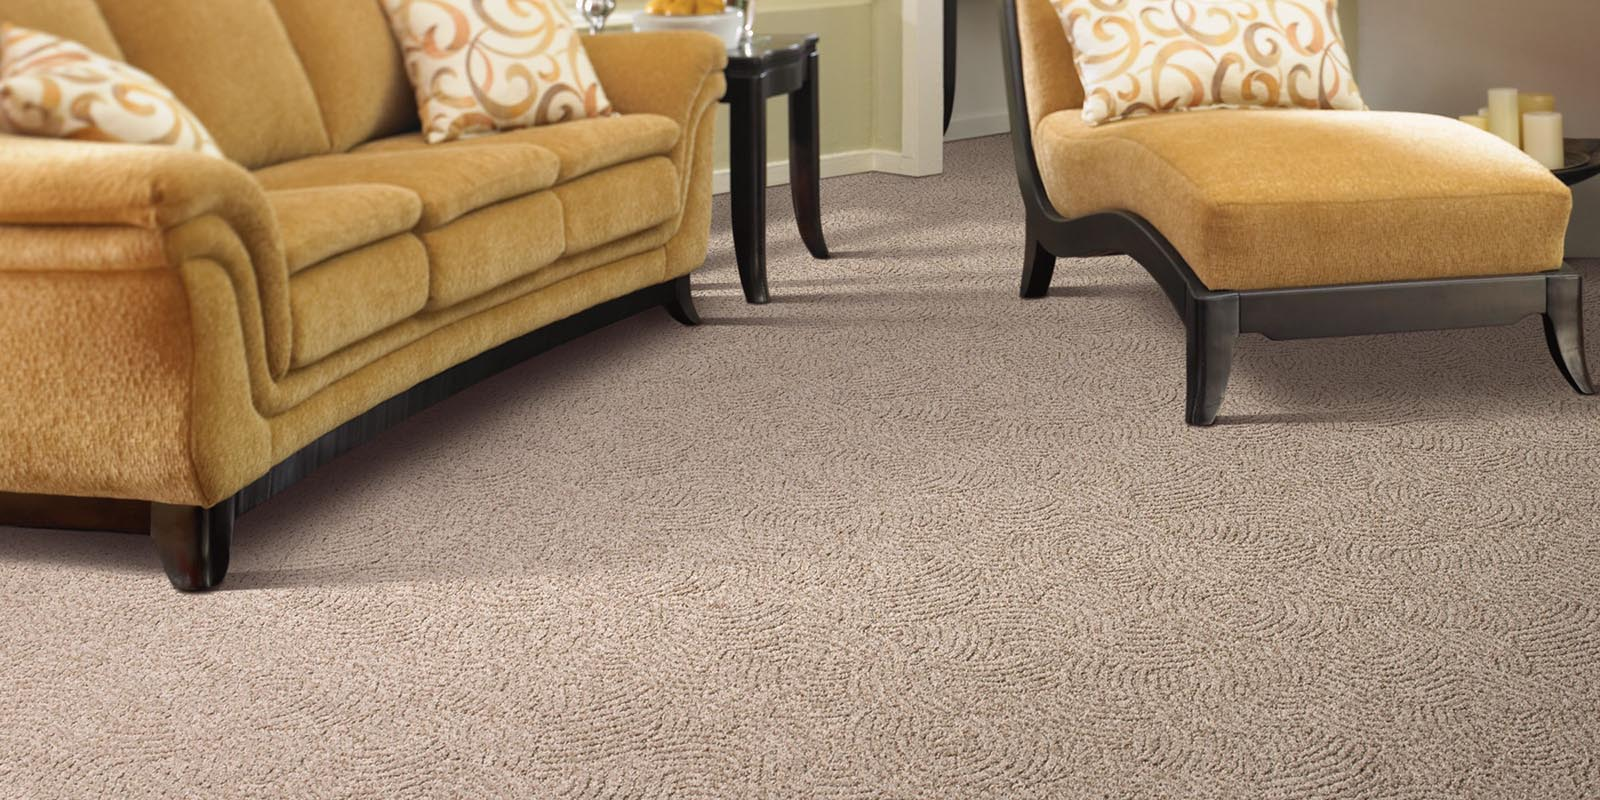 How to Select the Right Carpet Color for your Home